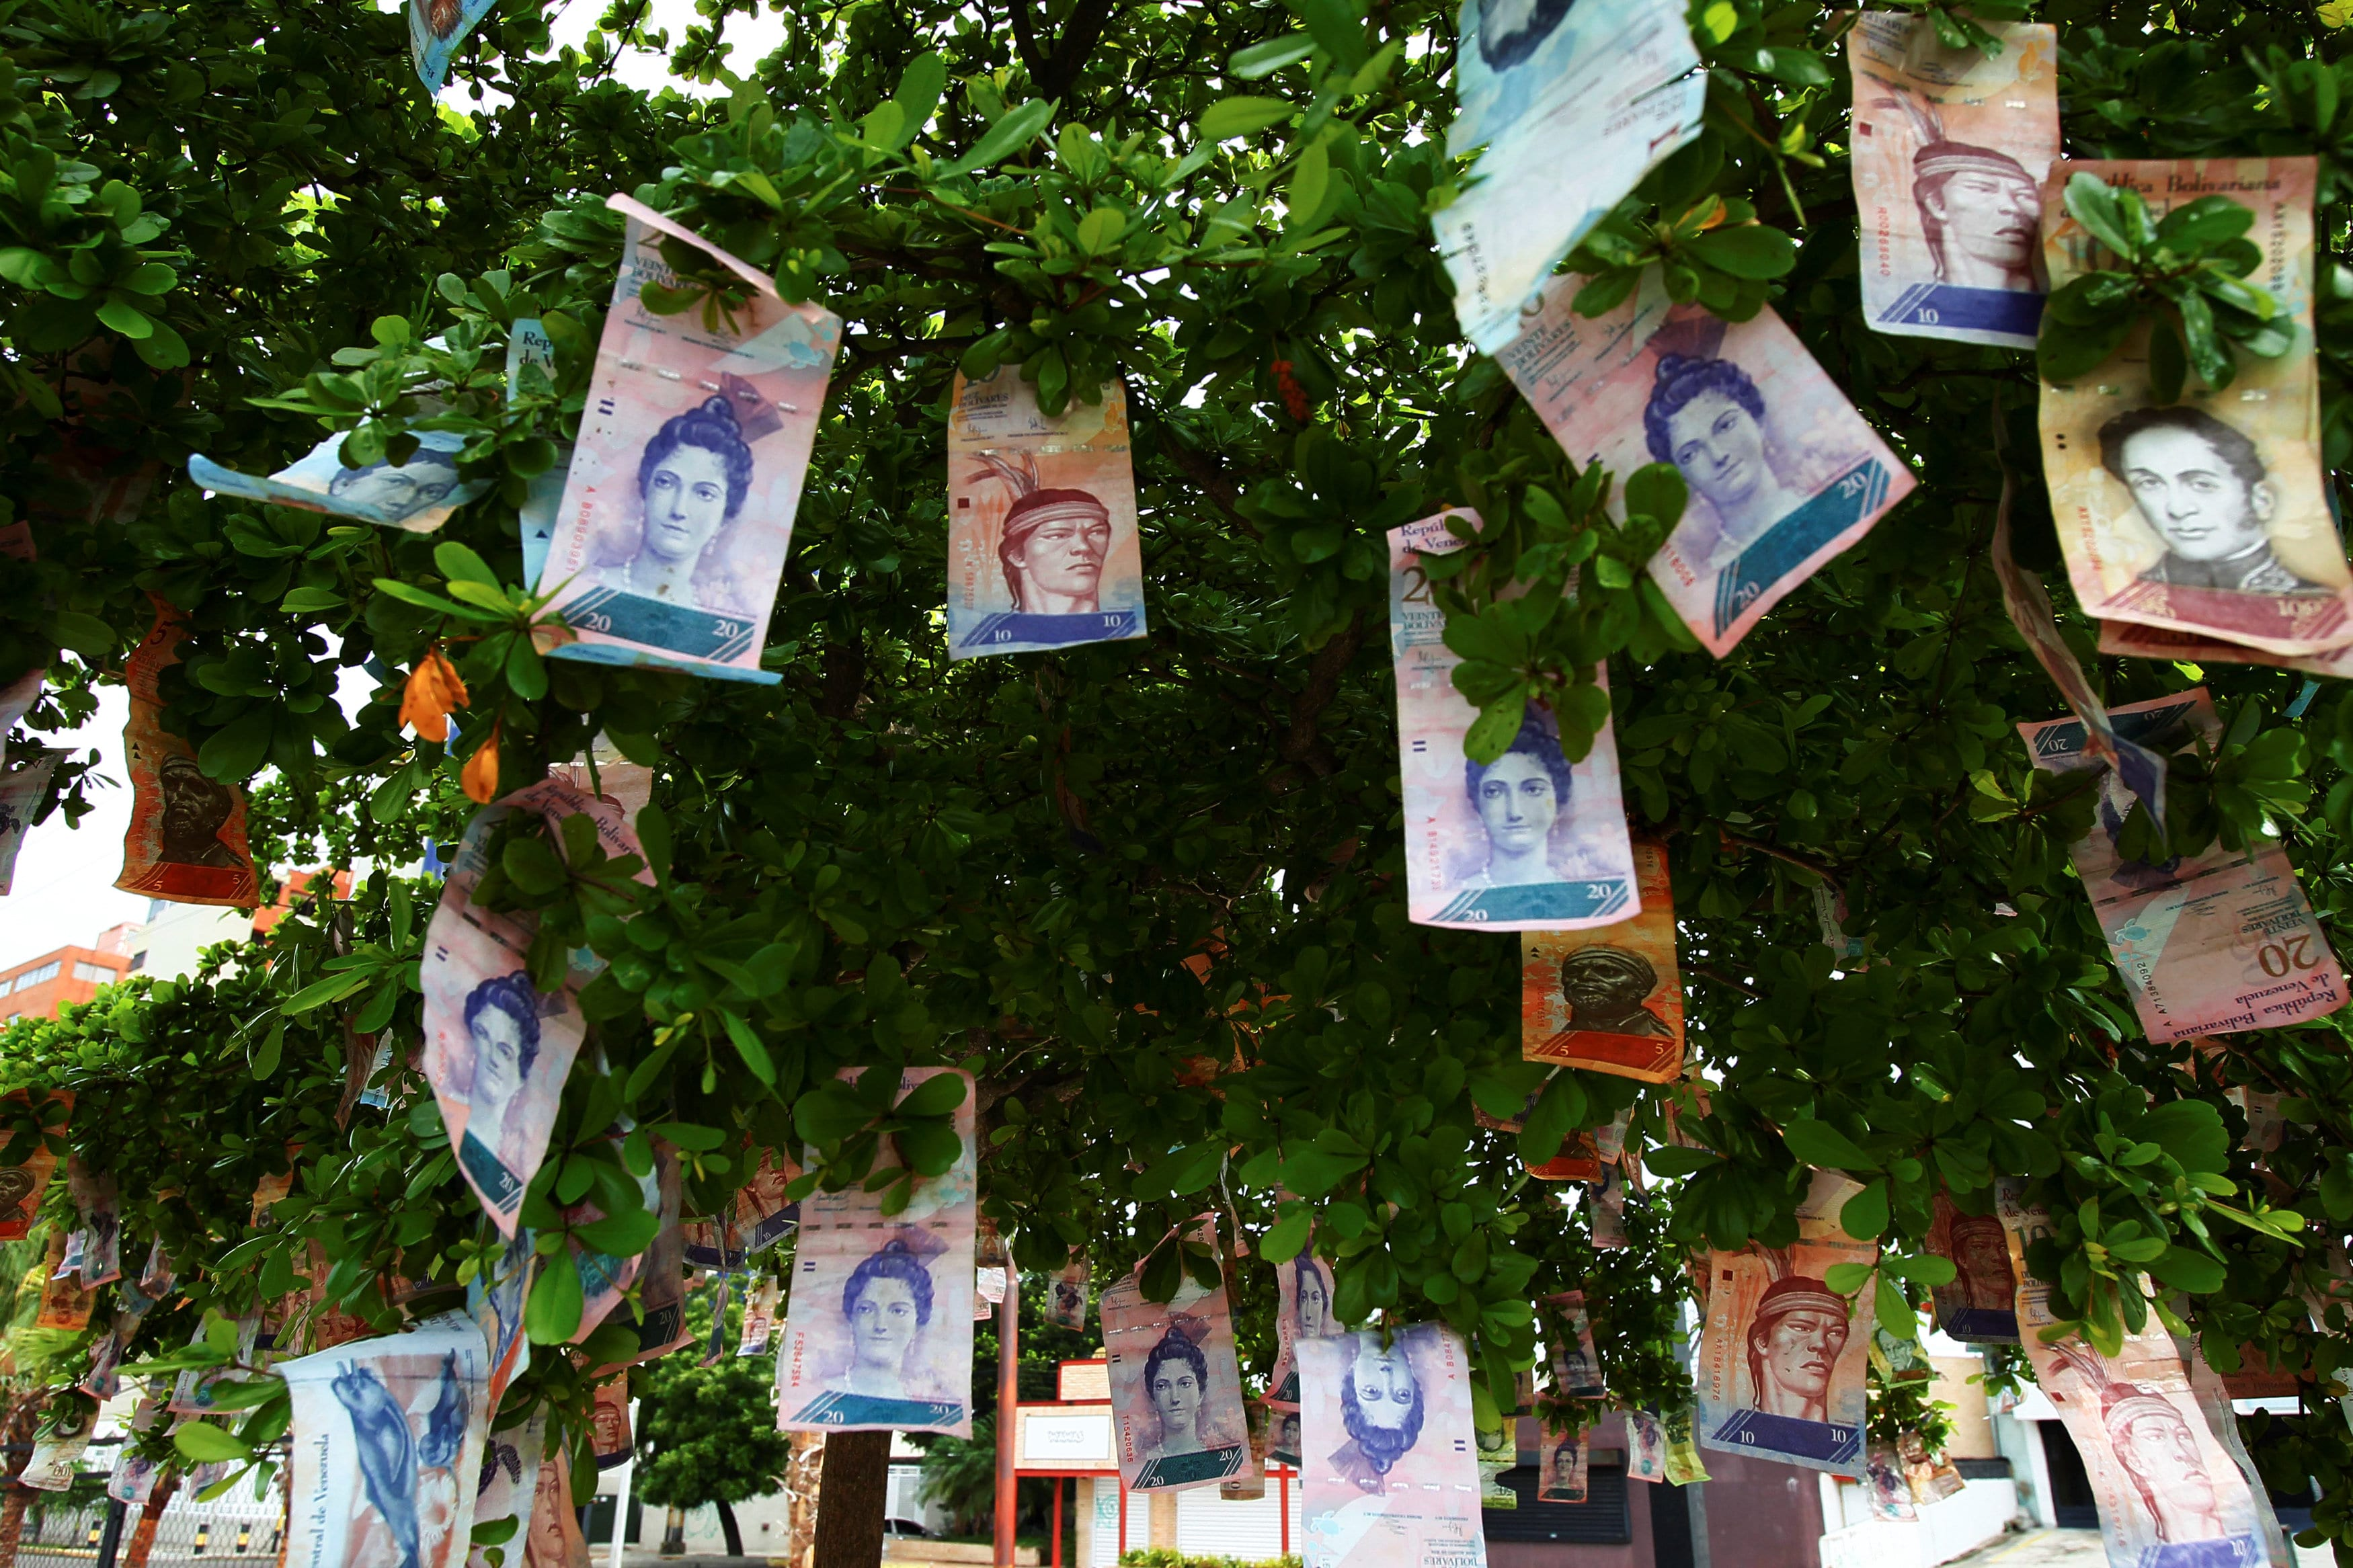 Image Bolivar notes hanging from a tree in Maracaibo, Venezuela November 11, 2017. [REUTERS/Isaac Urrutia]